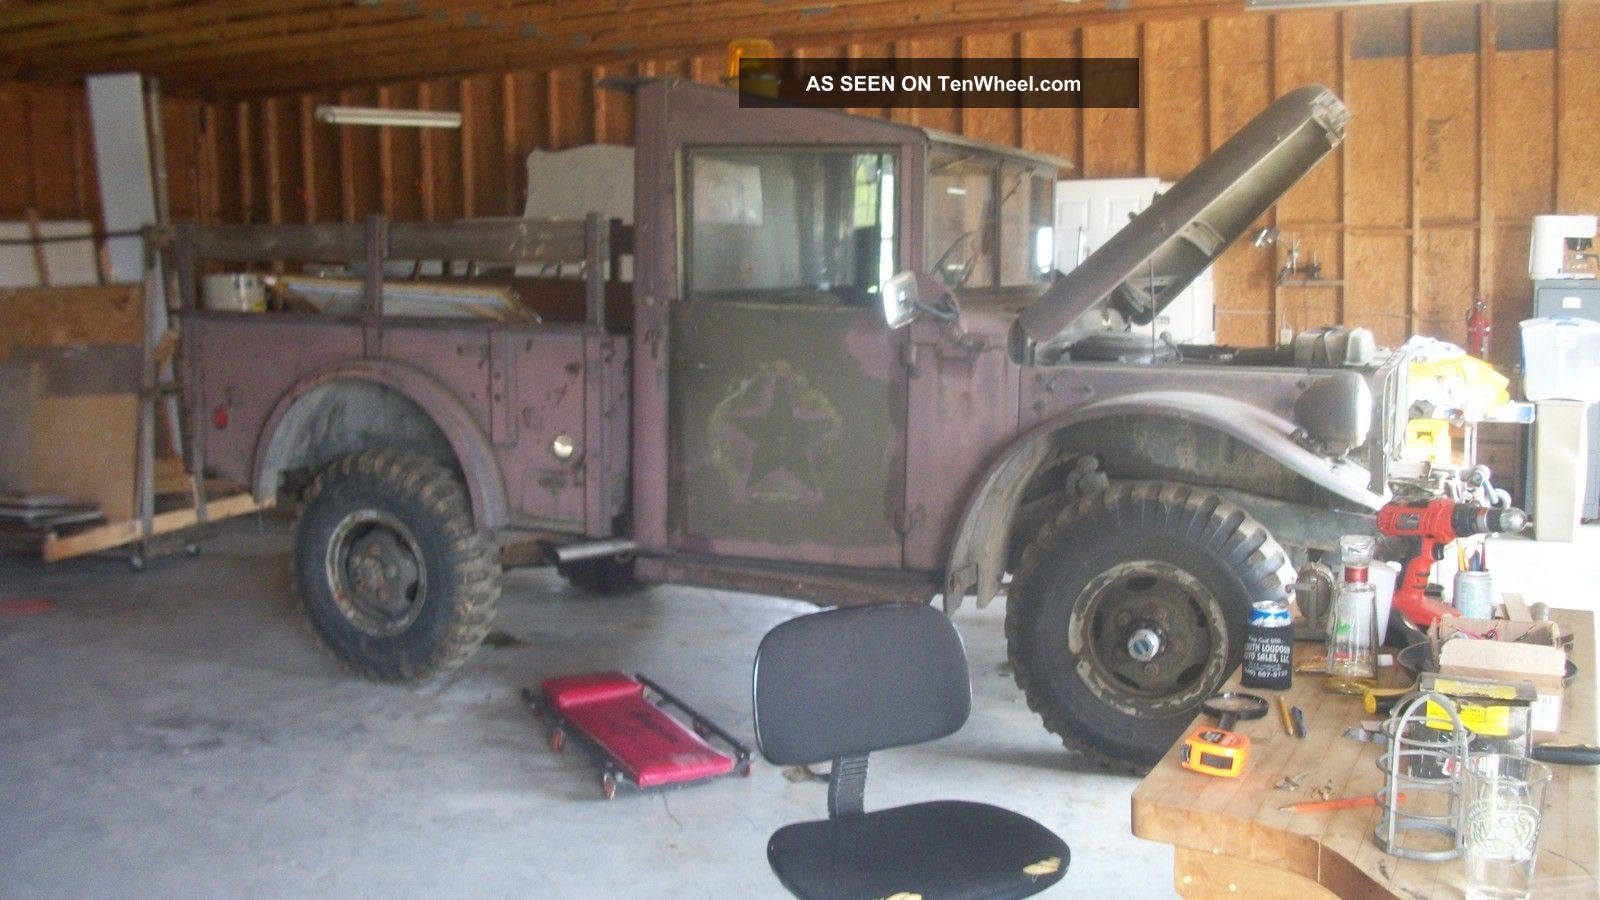 1954 Dodge M37 Power Wagon Troop Transport Vehicle Photo 8